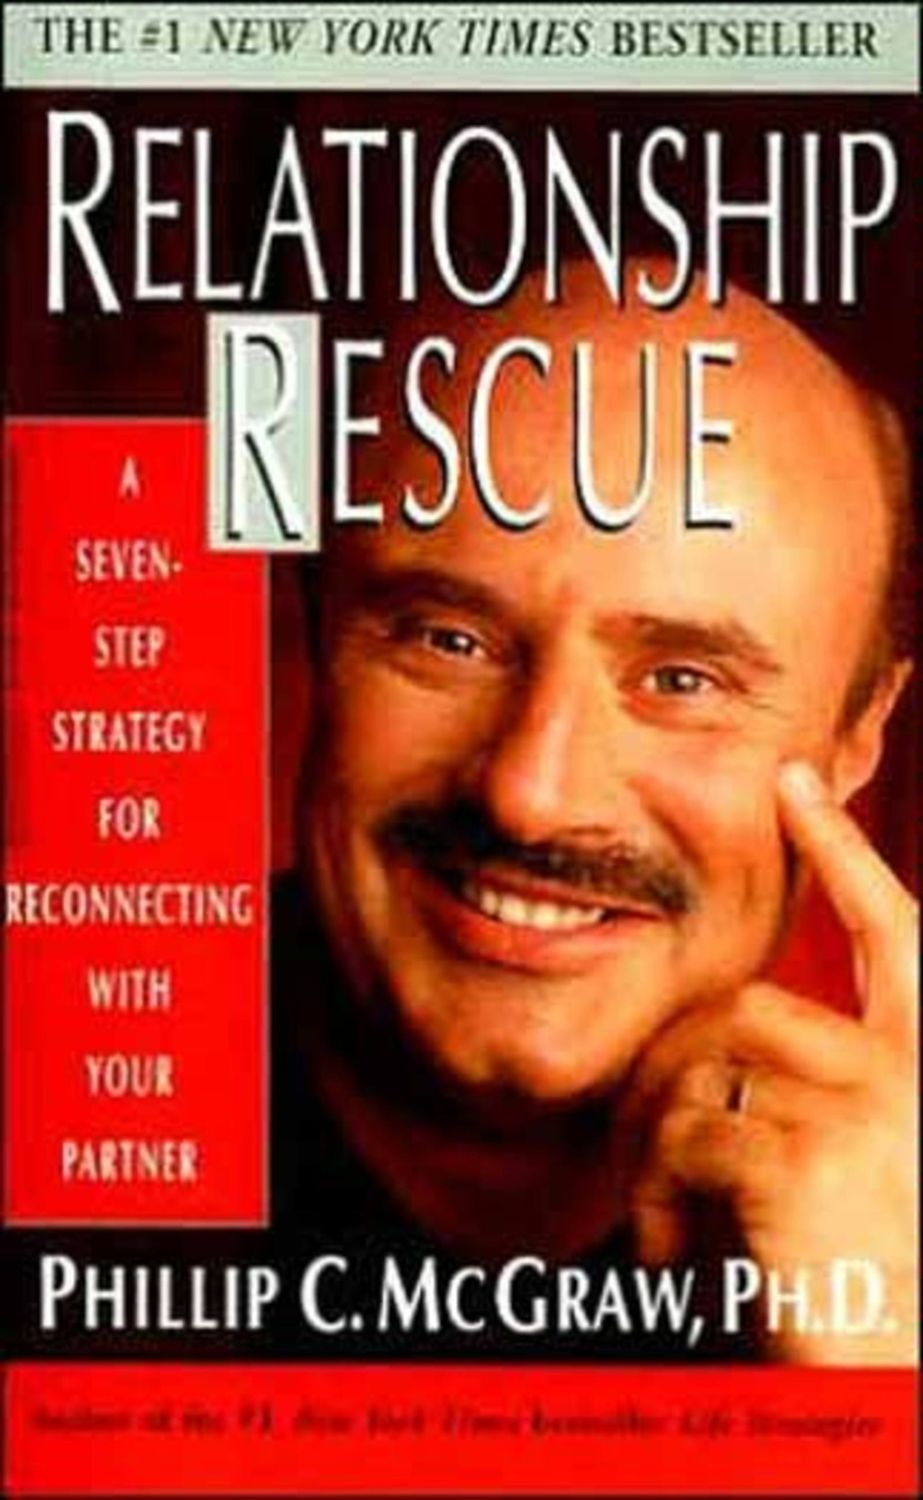 Workbooks relationship rescue workbook : 15 Books You Should Read To Become A Better Person In 2017 | Playbuzz